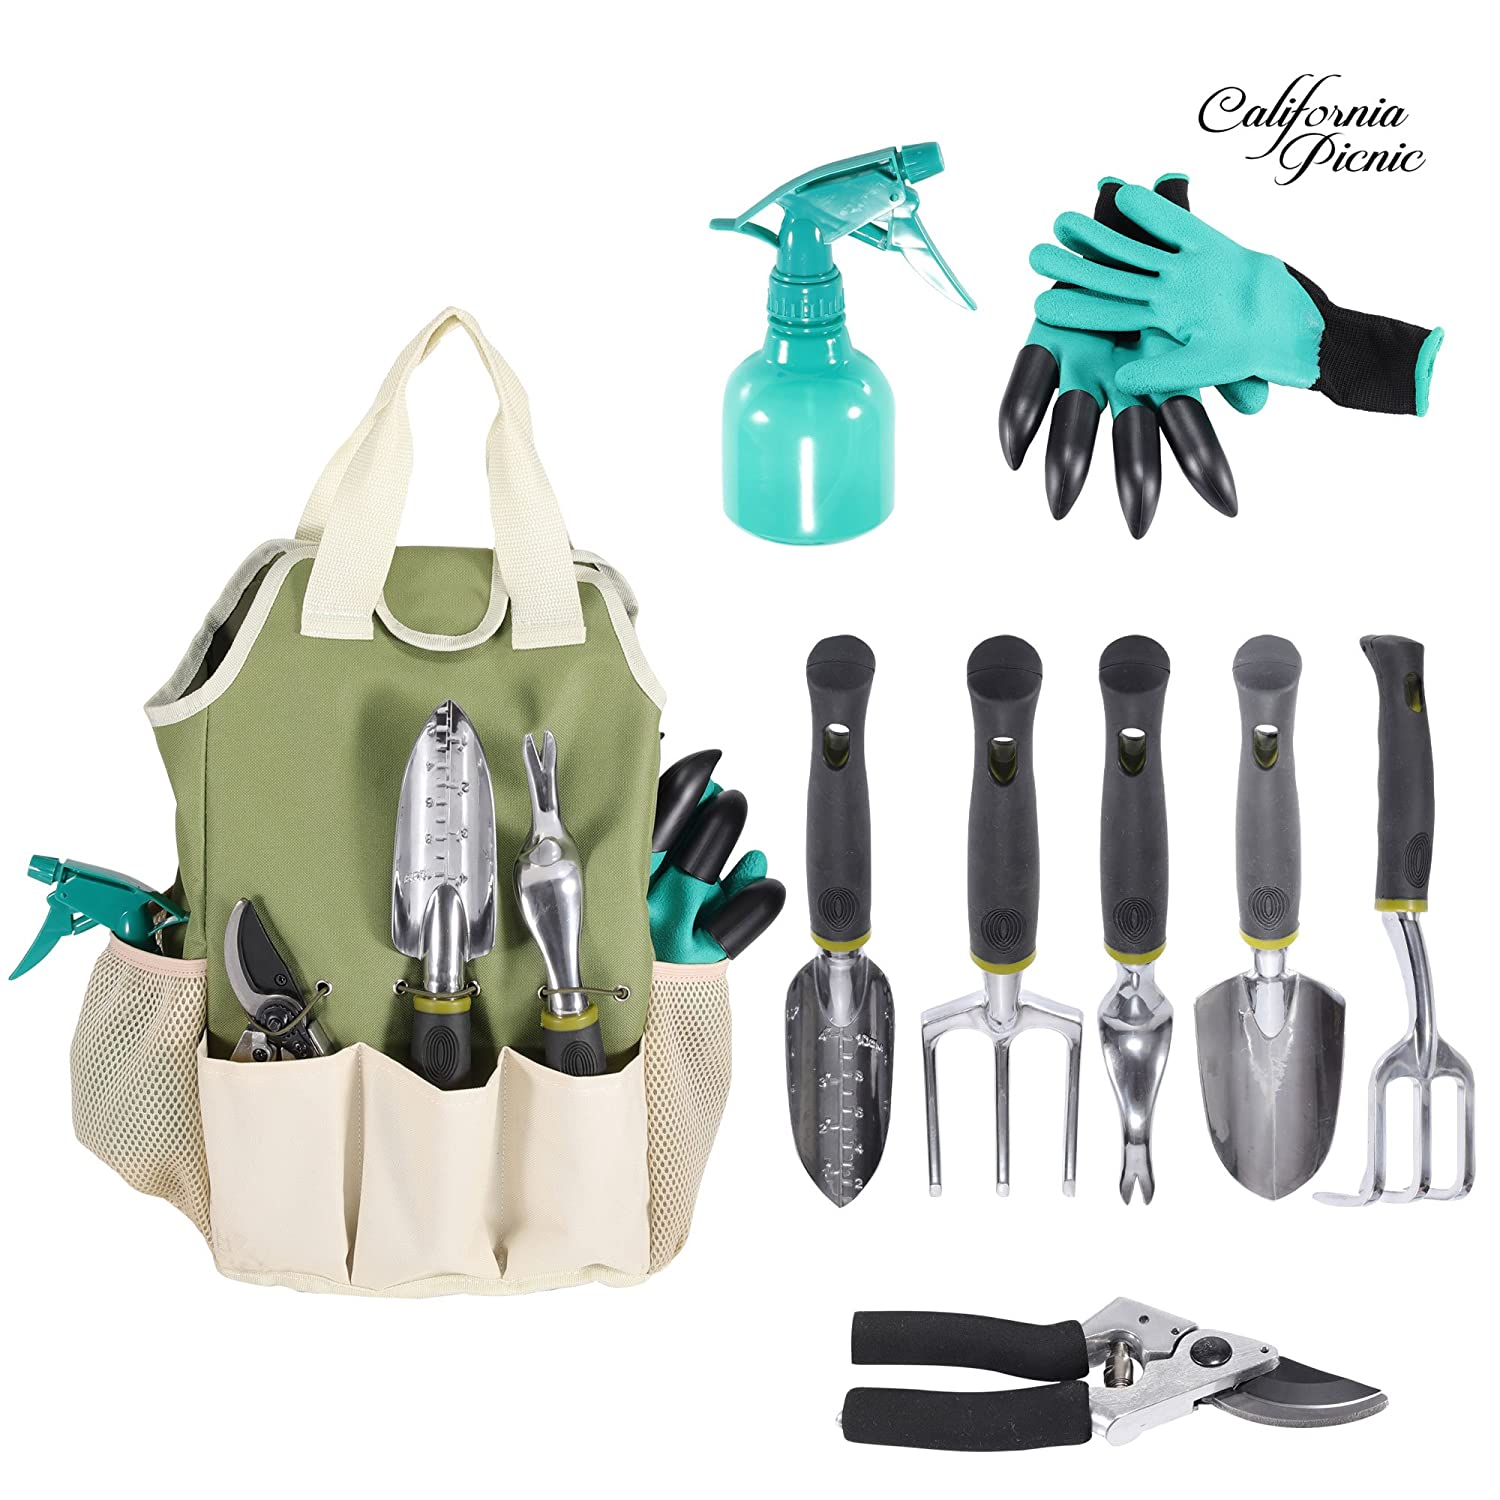 1 Pair Garden Digging Gloves With 4 Right Hand Fingertips Sharp+fork Claws Making Things Convenient For The People Tools